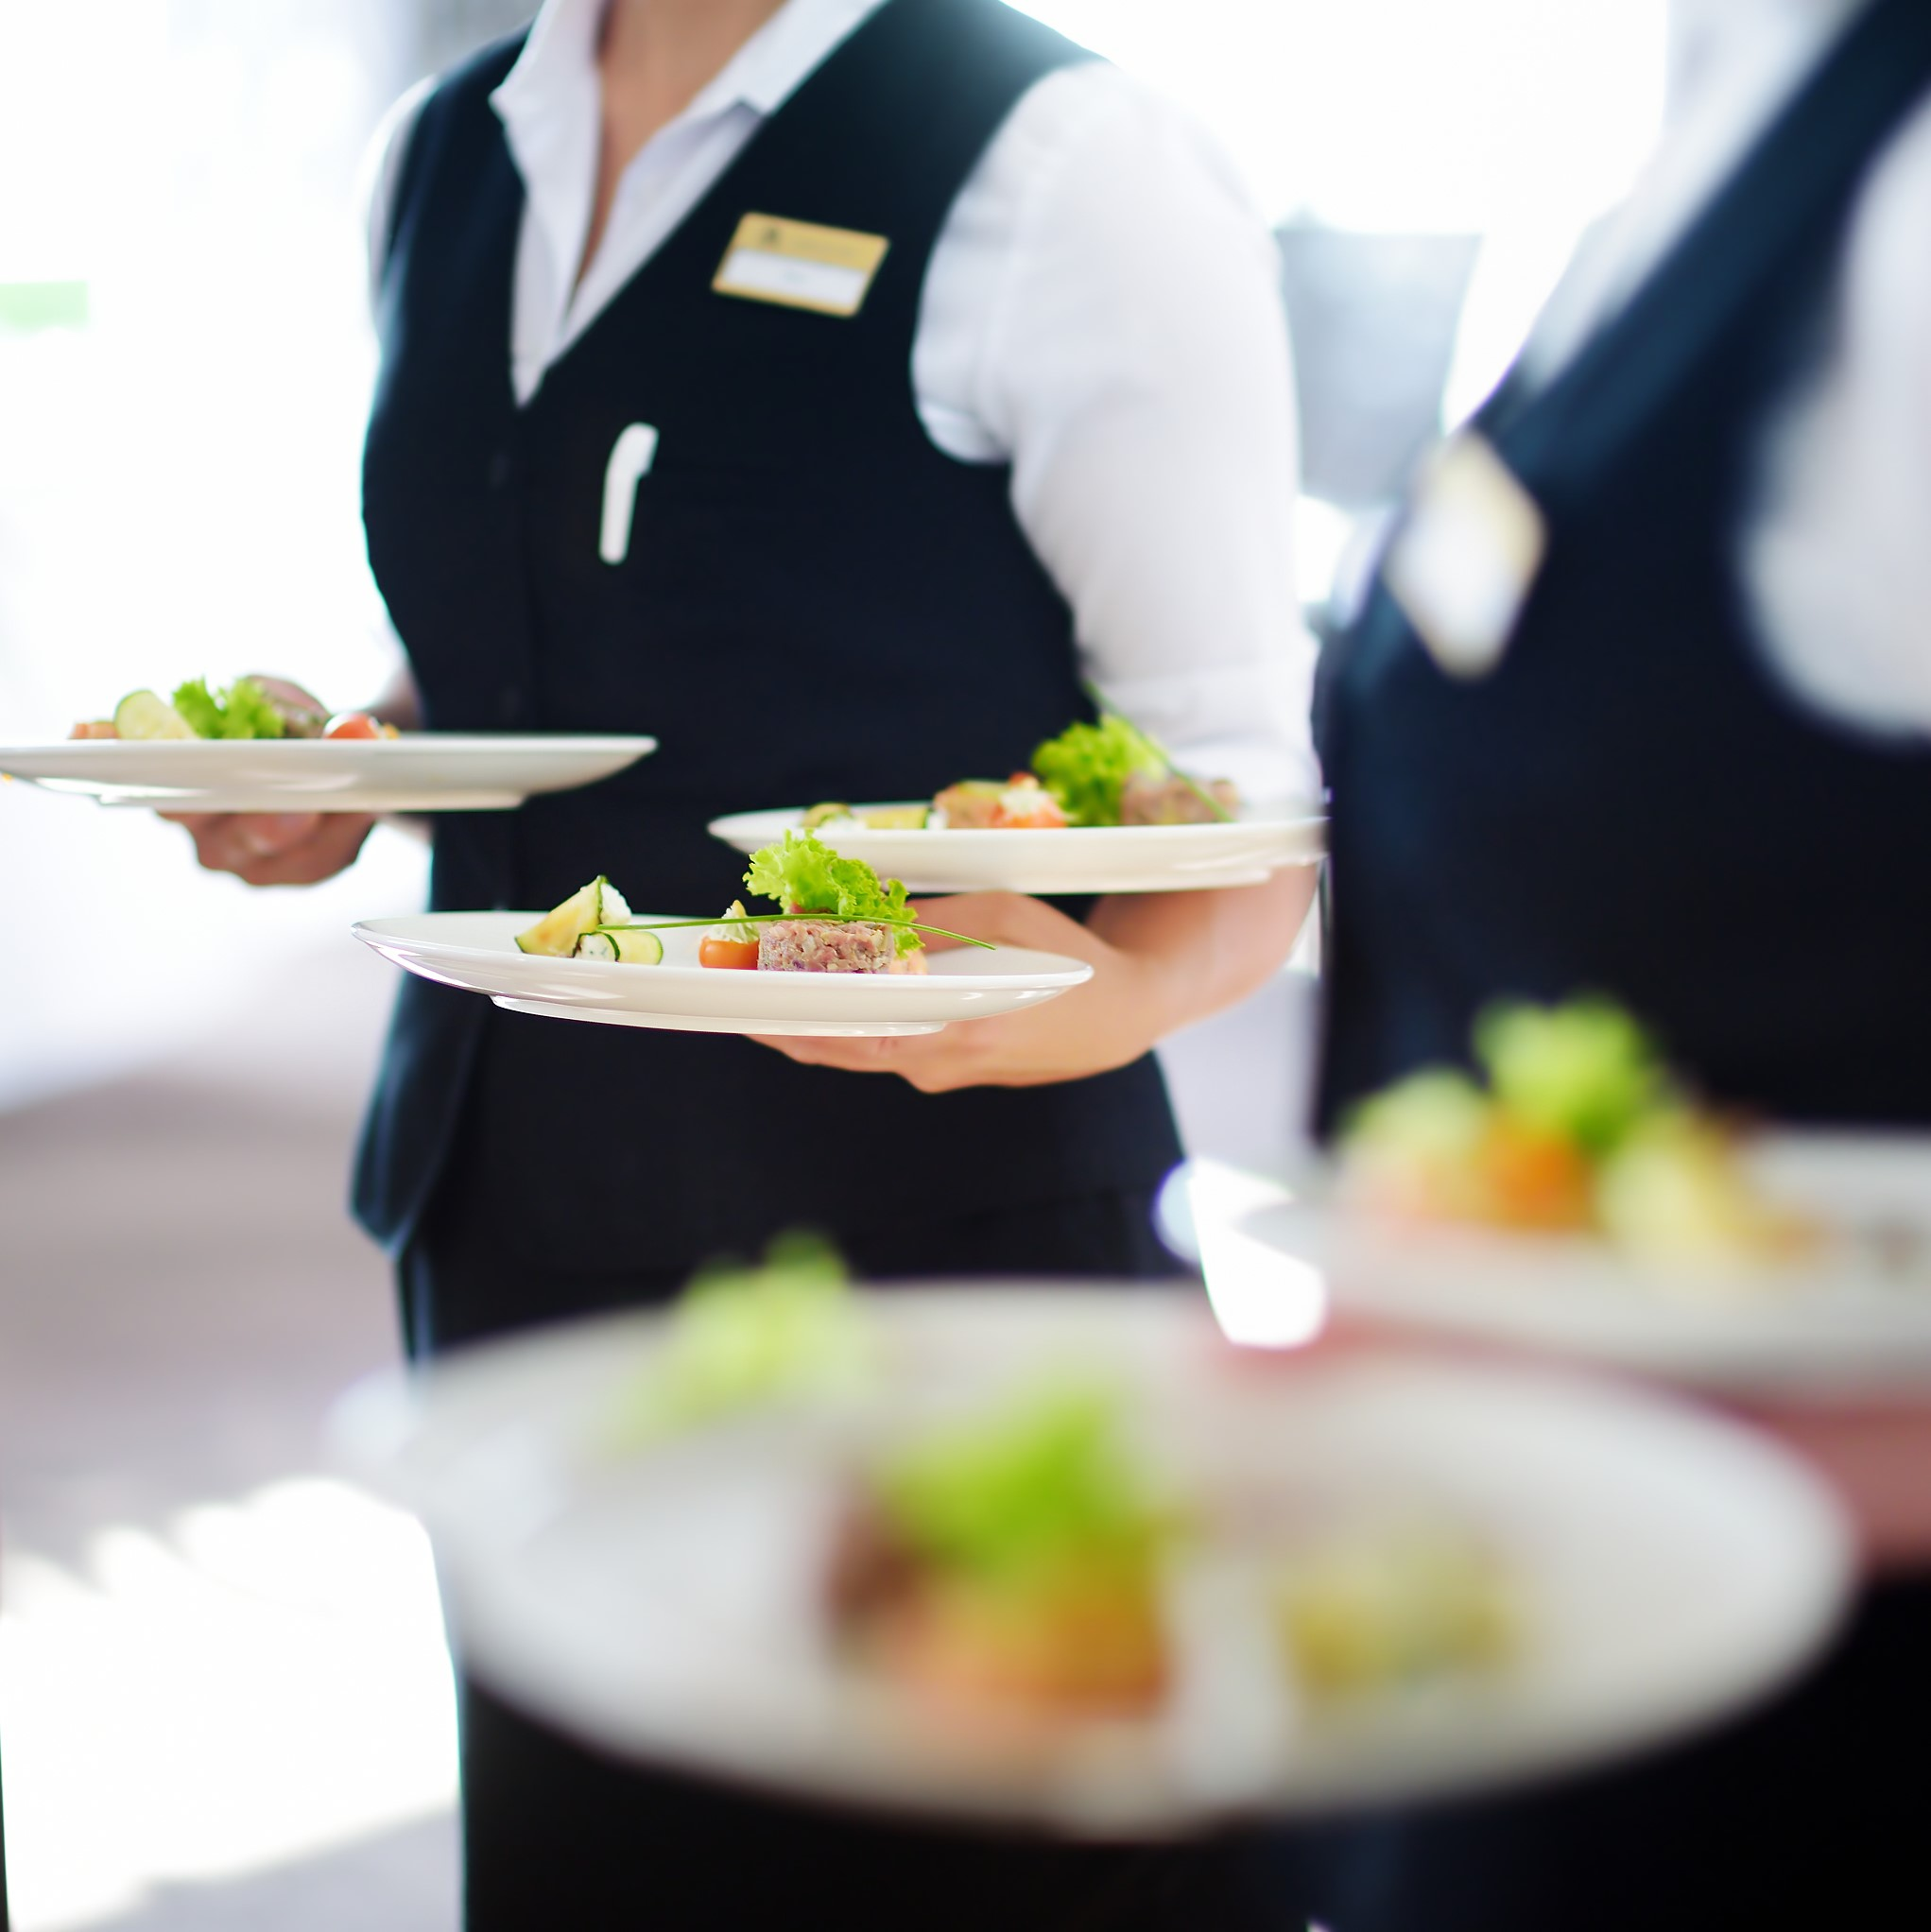 Waiter carrying plates with meat dish on some festive event, party or wedding reception